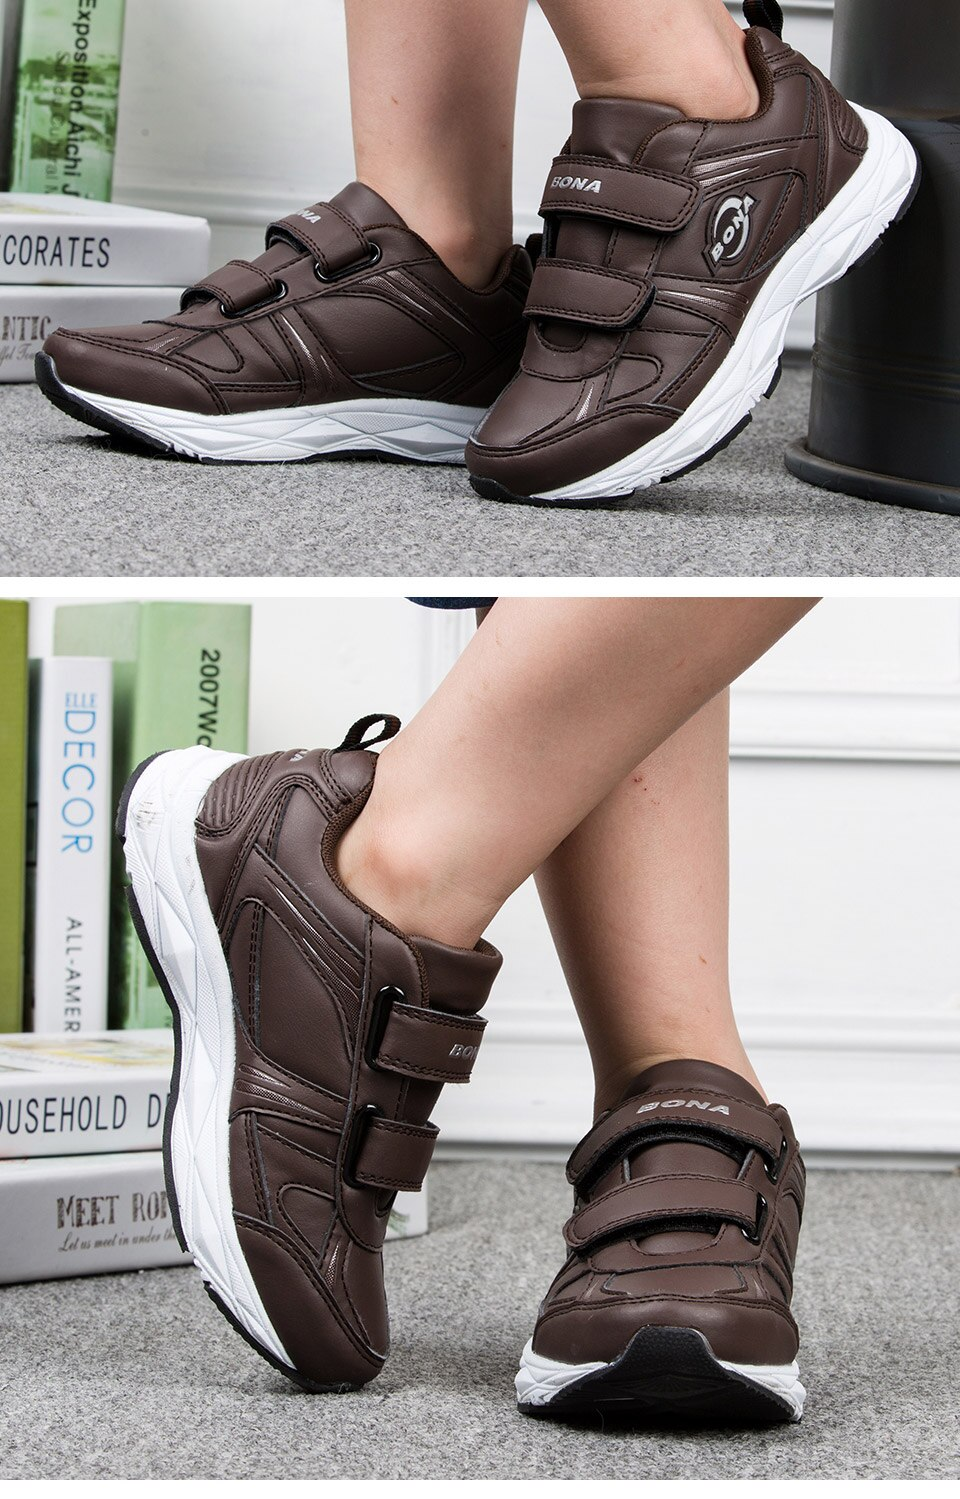 BONA New Popular Style Children Casual Shoes Hook & Loop Boys Sneakers Outdoor Jogging Shoes Light Soft Free Shipping